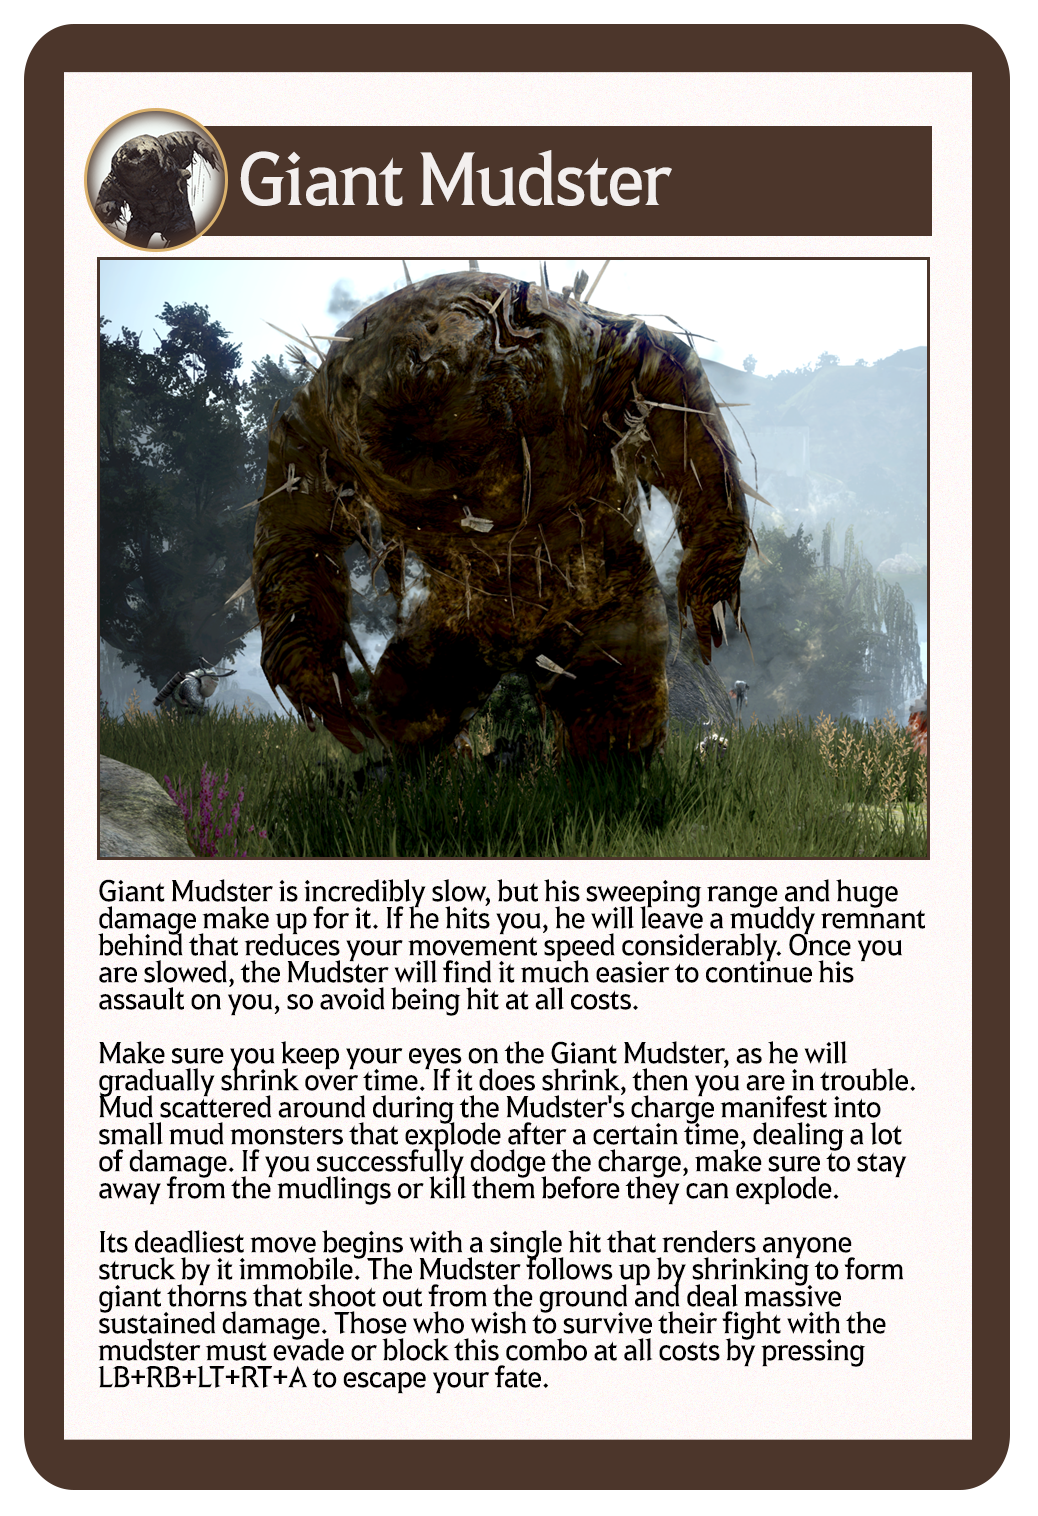 Giant_Mudster